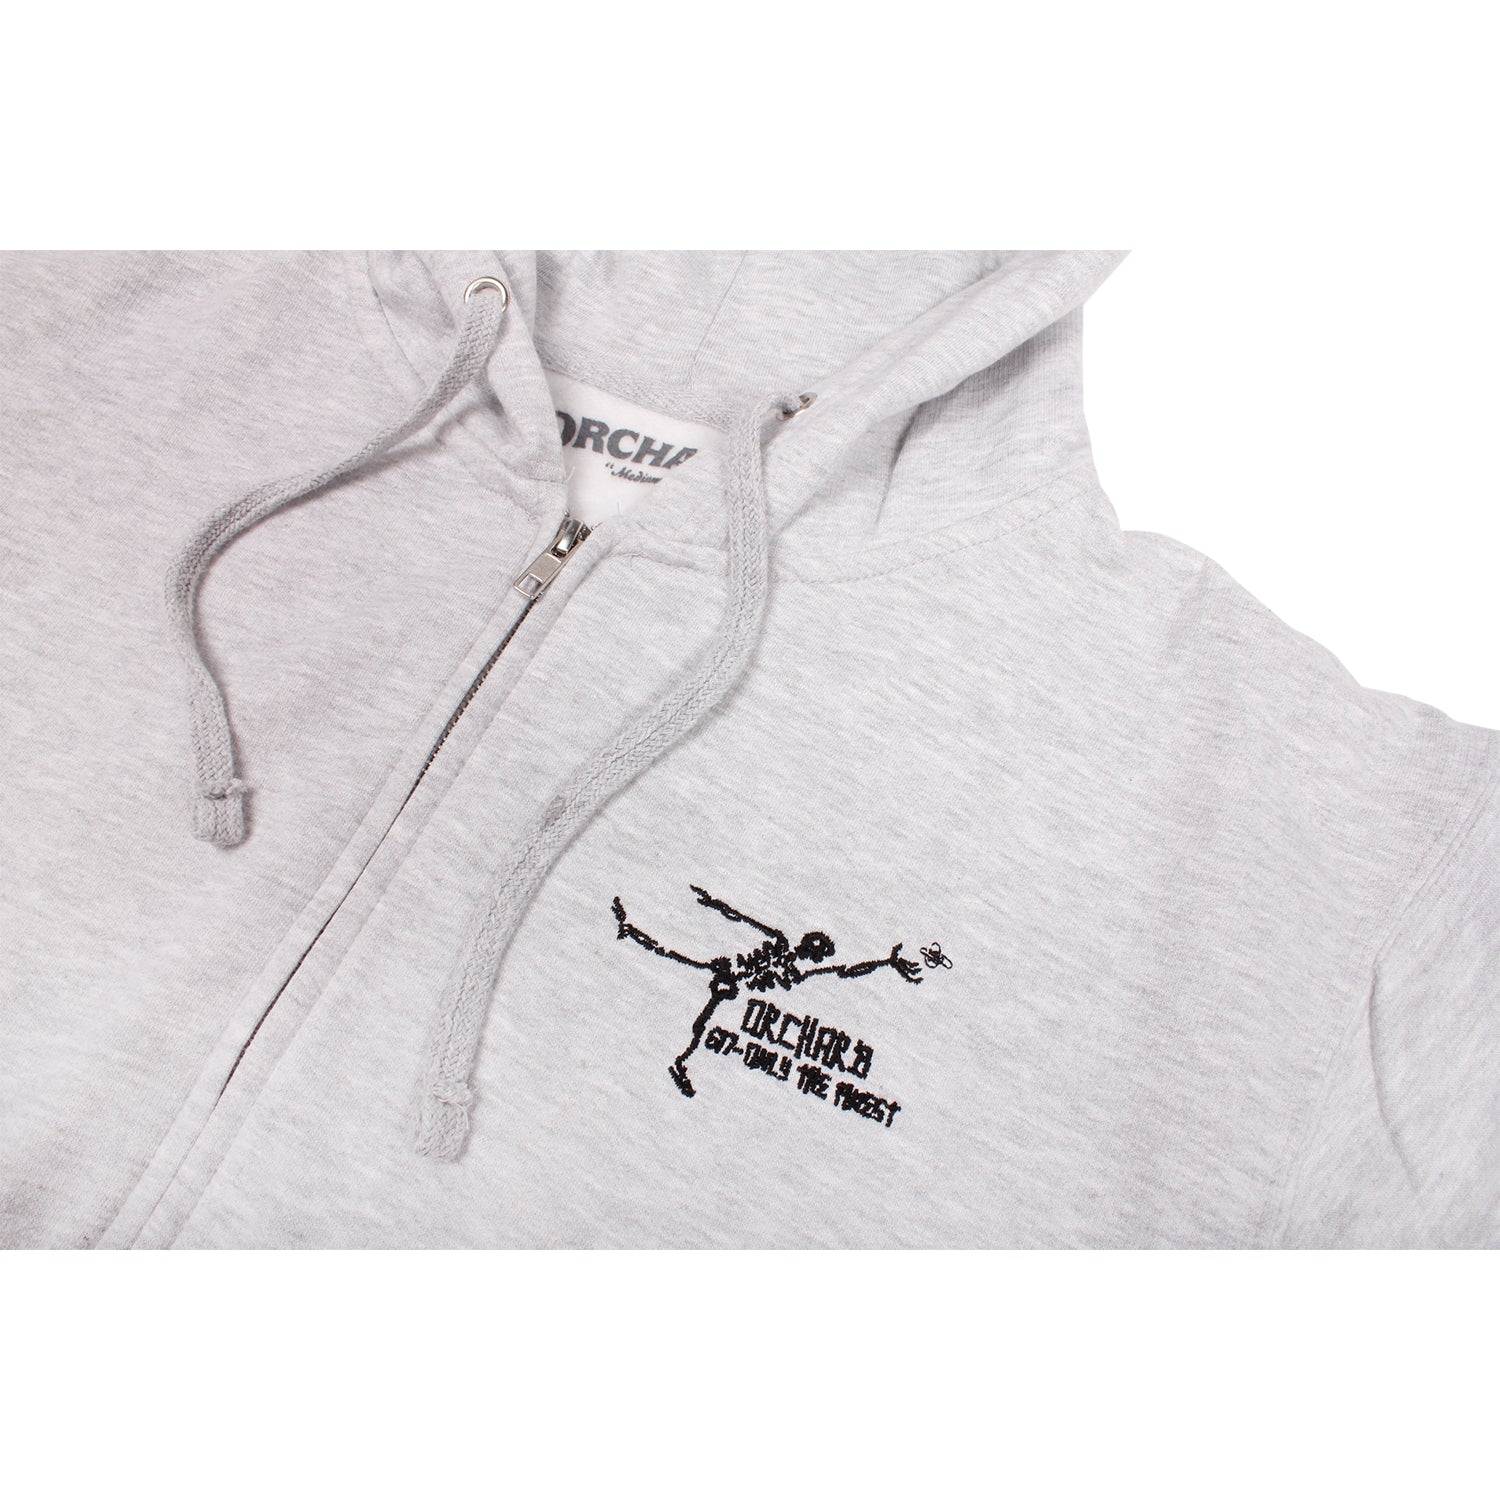 Orchard Gonz Only The Finest Zip Up Hooded Sweatshirt Ash